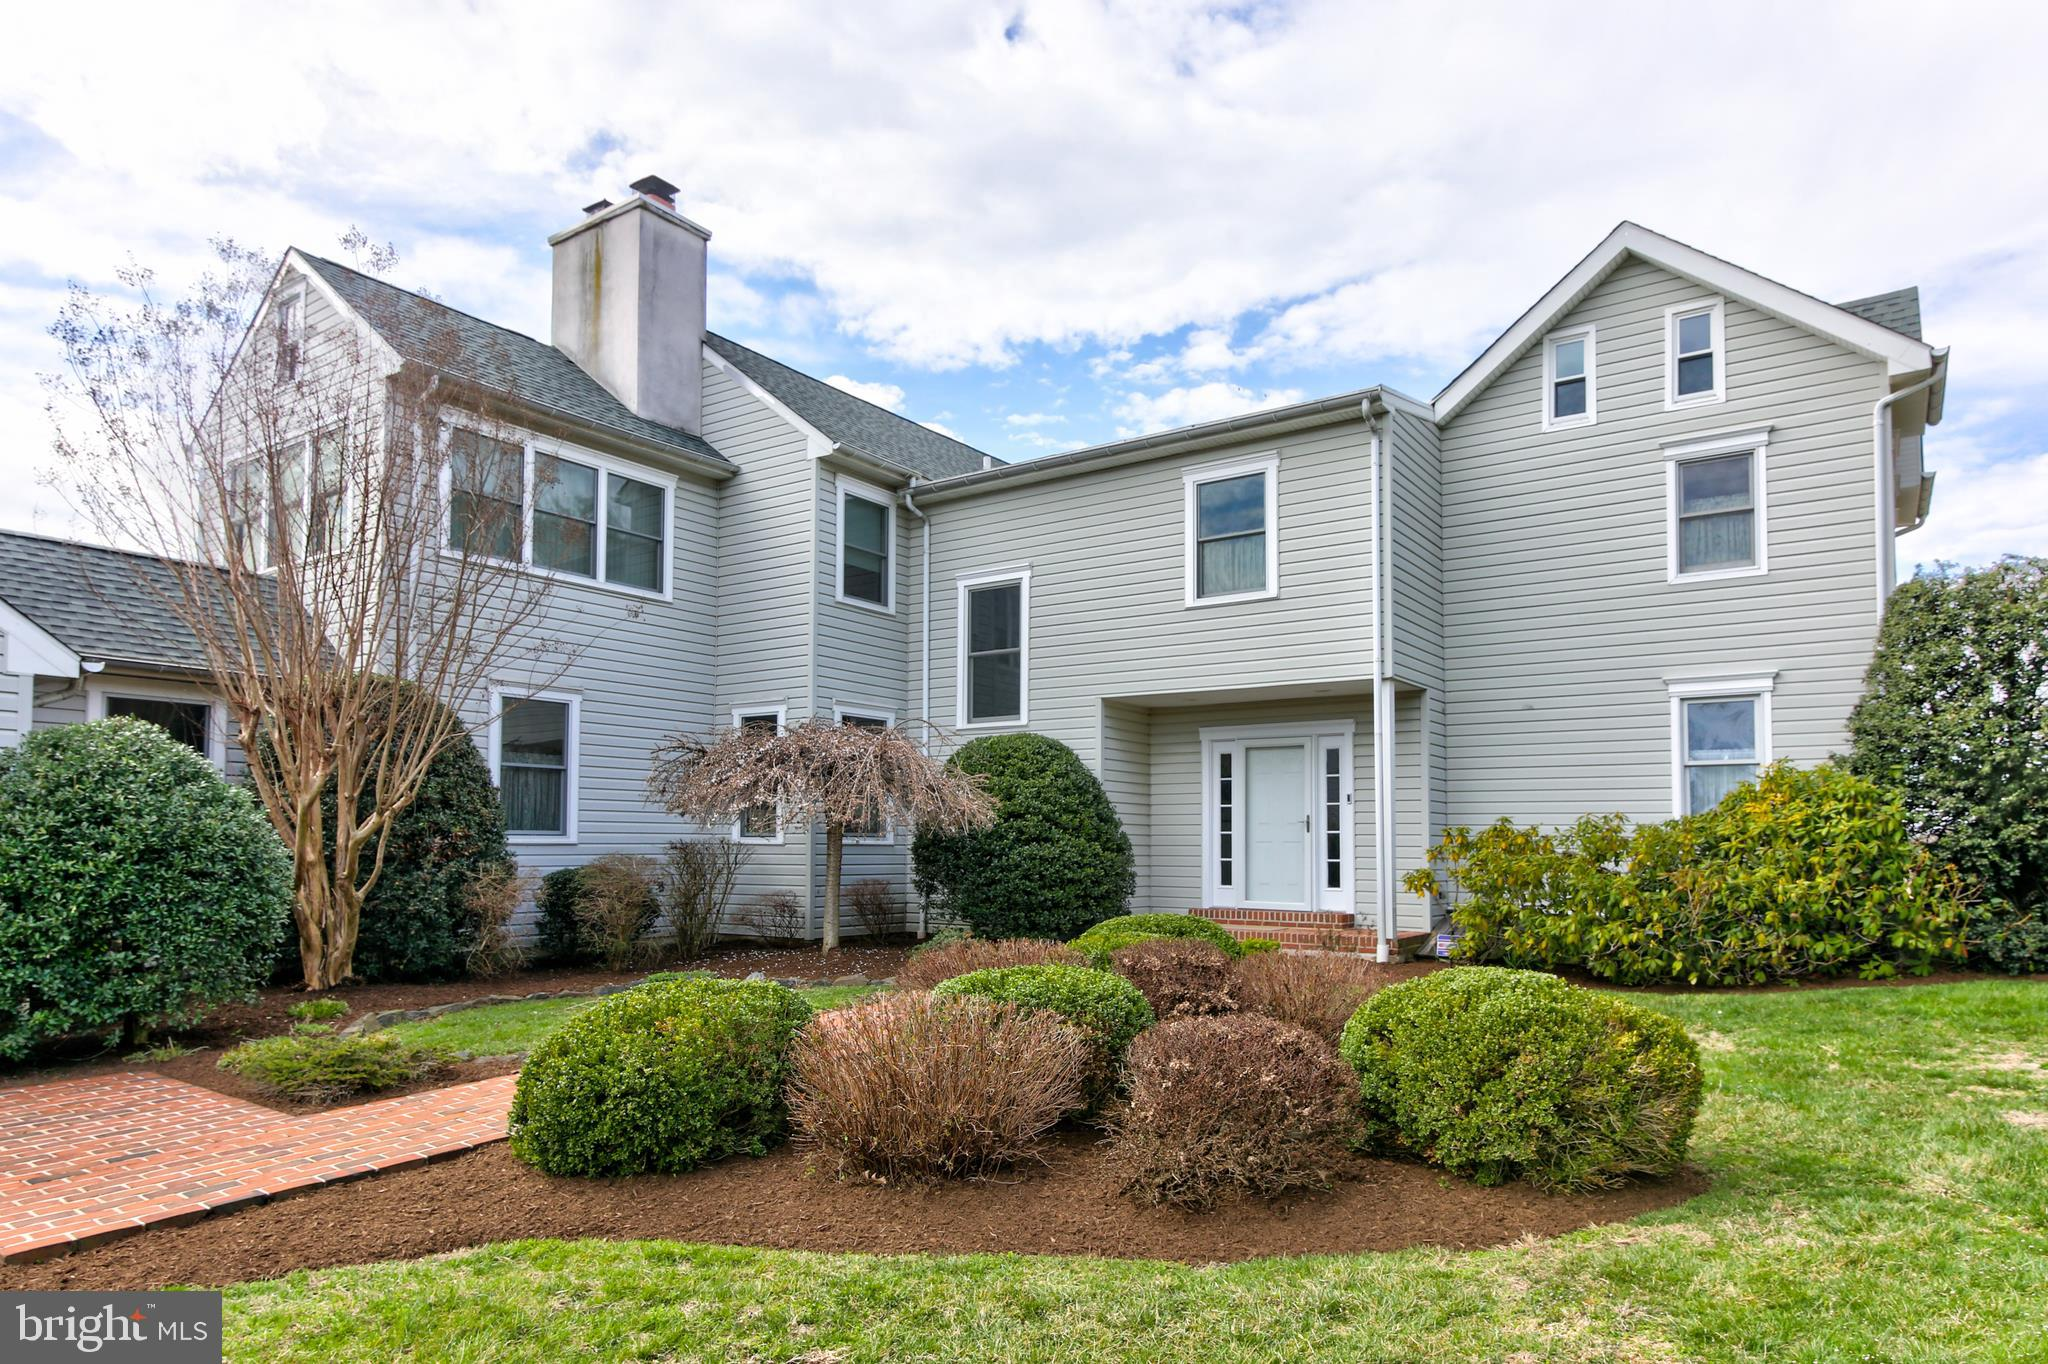 480 RING ROAD, CHADDS FORD, PA 19317